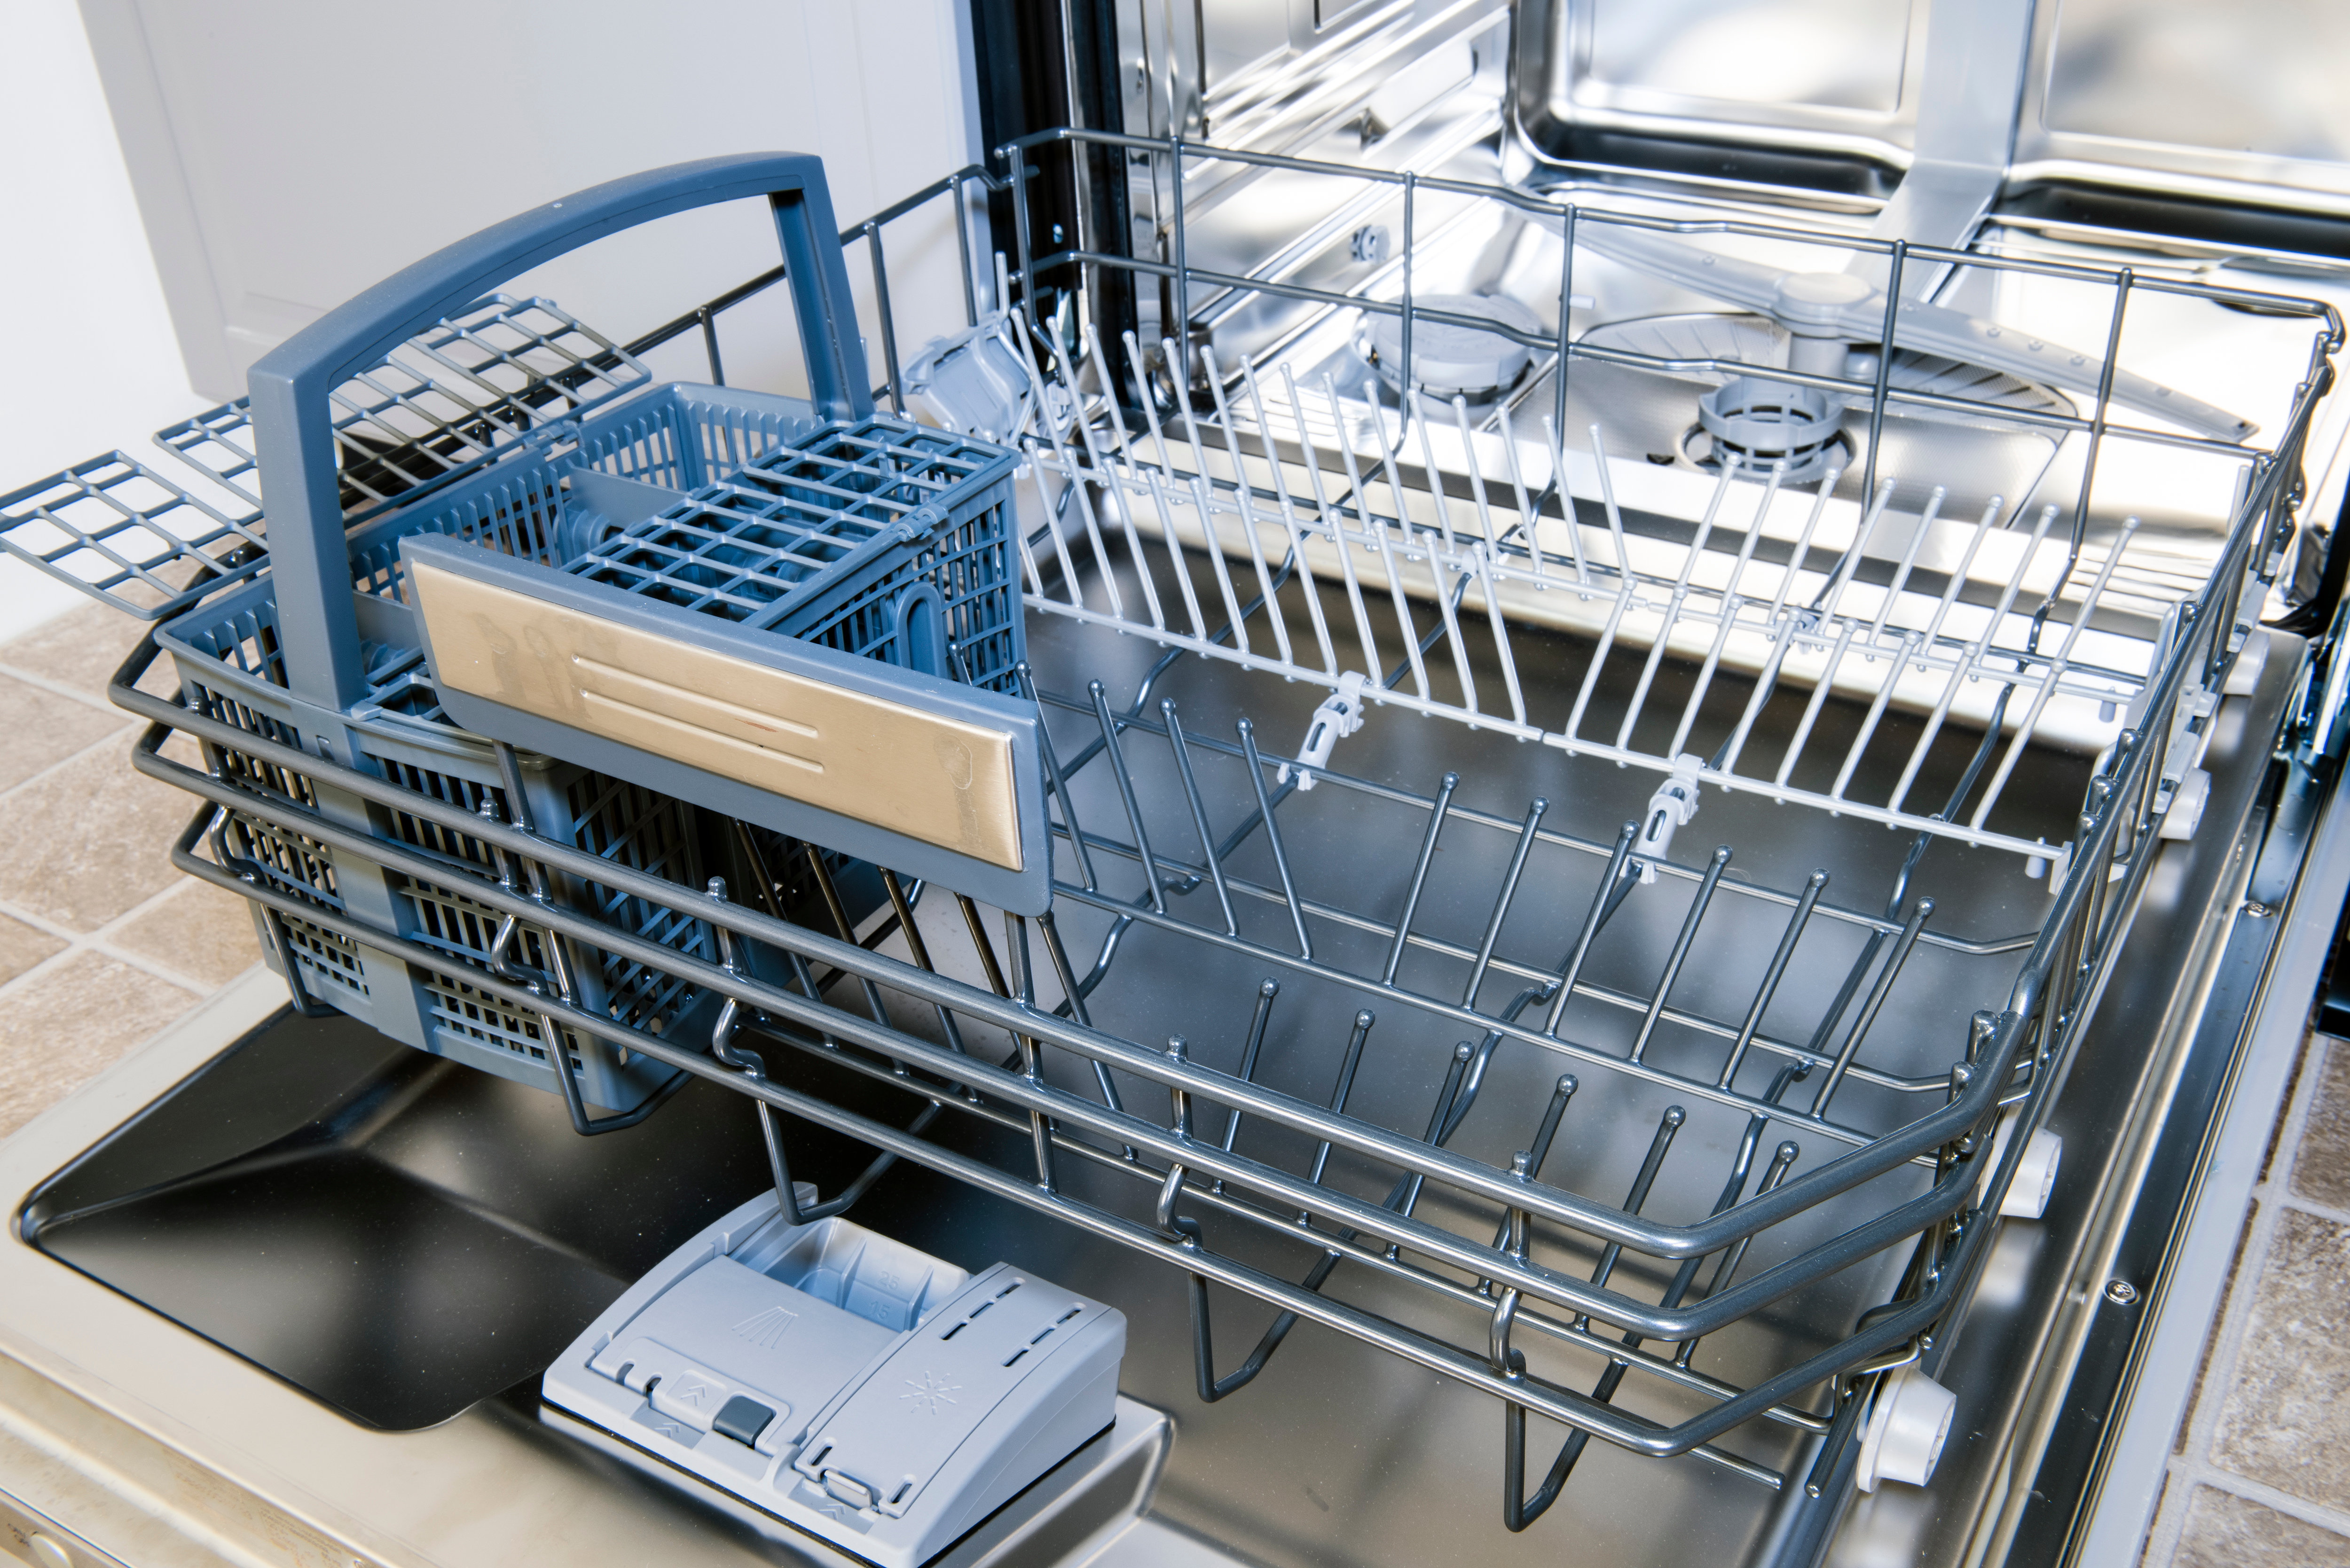 Dishwasher With Third Rack For Silverware.Lg Dishwasher Reviews ...